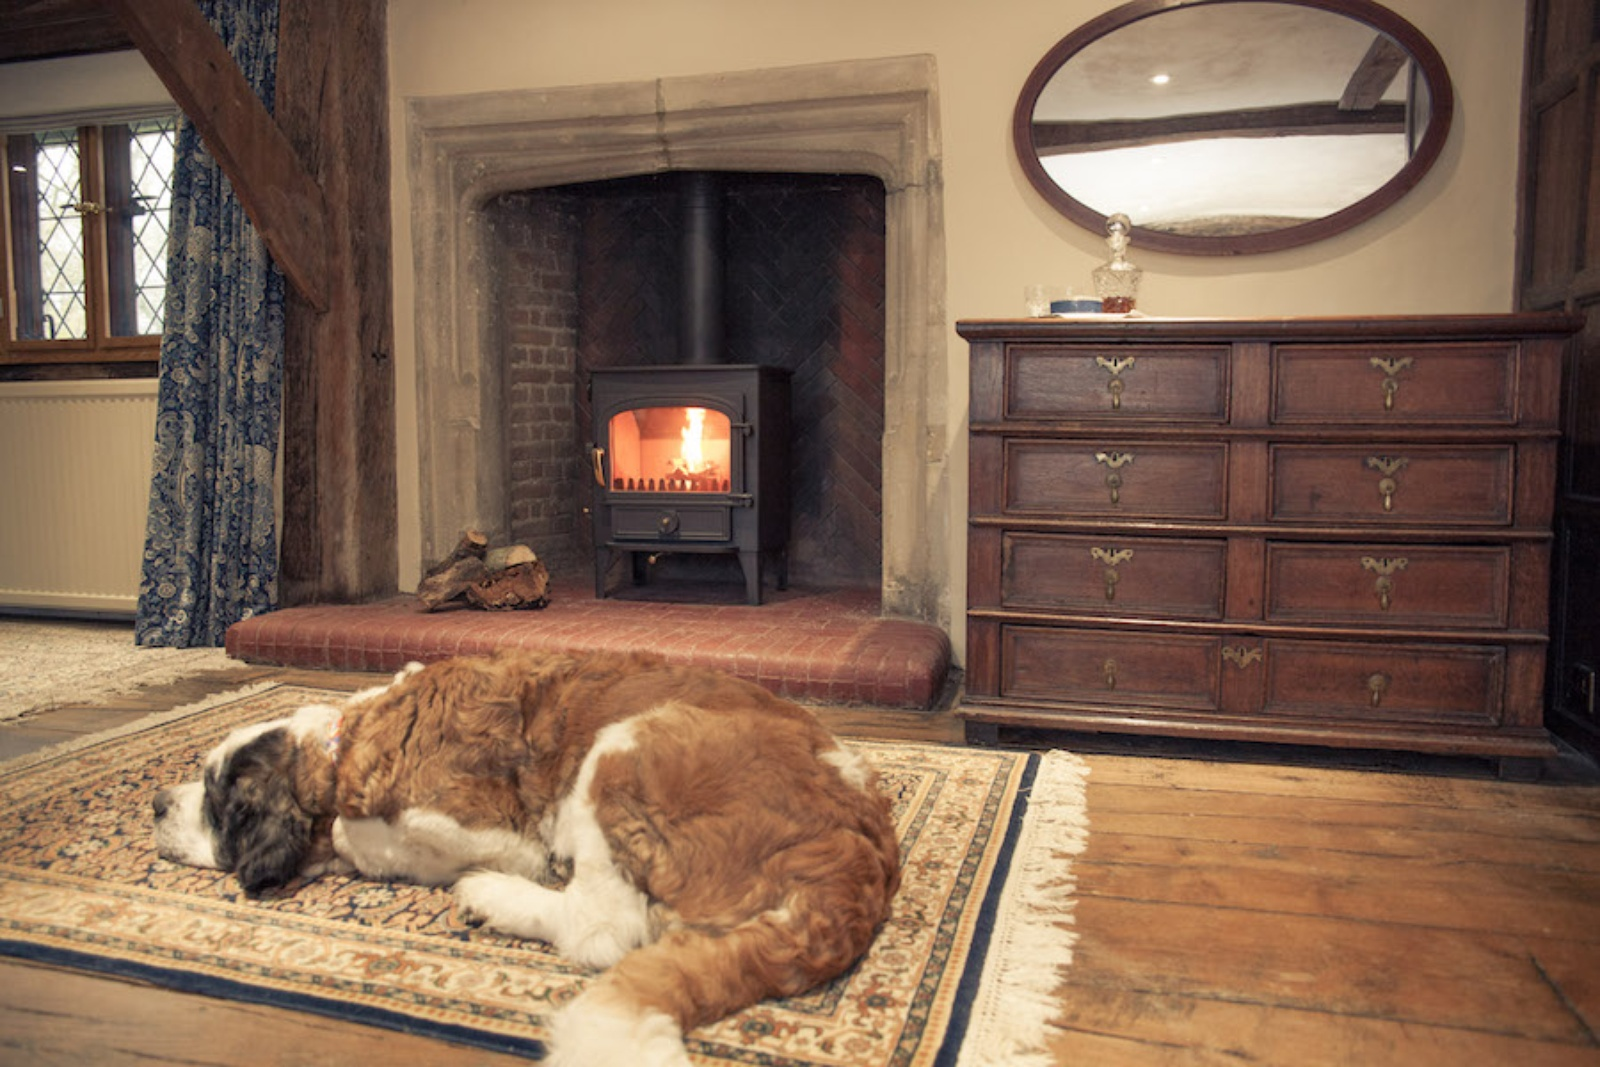 The 11th Century Crendon Manor Bridal Suite Fireplace with Clearview Vision 500